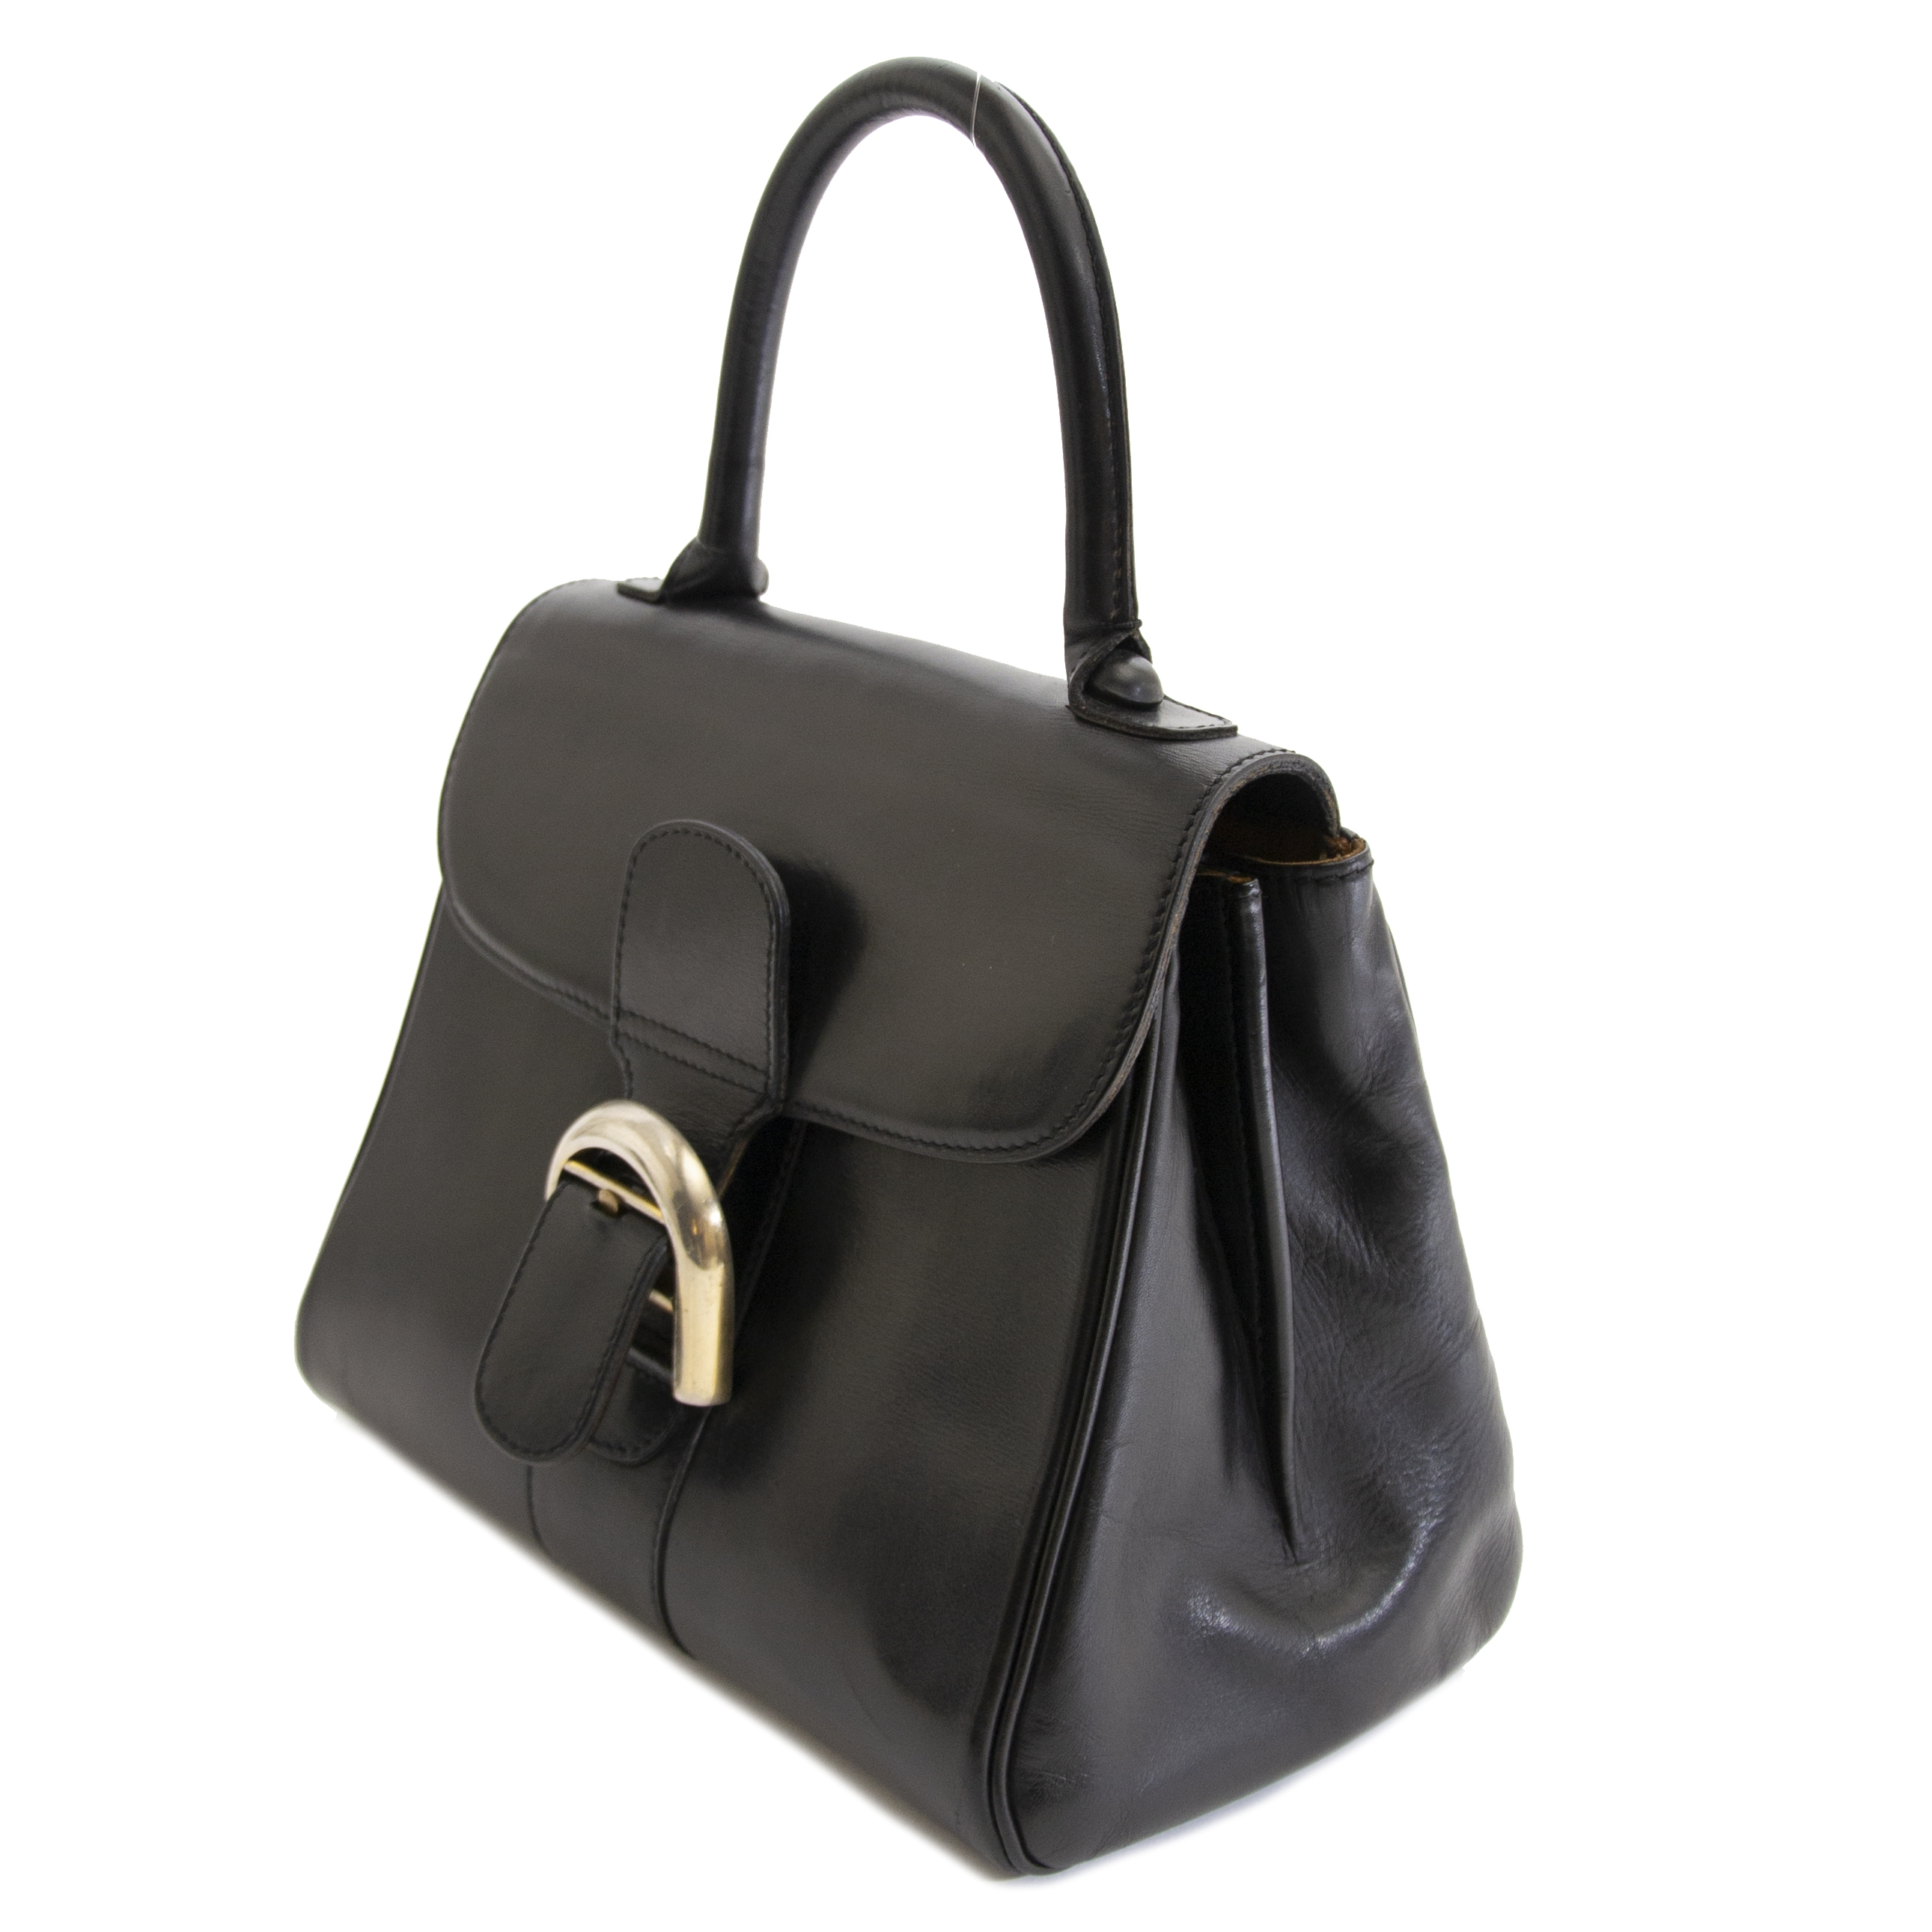 looking for a Delvaux Brillant PM Black Box Calf PHW? Now online at labellov.com for the best price